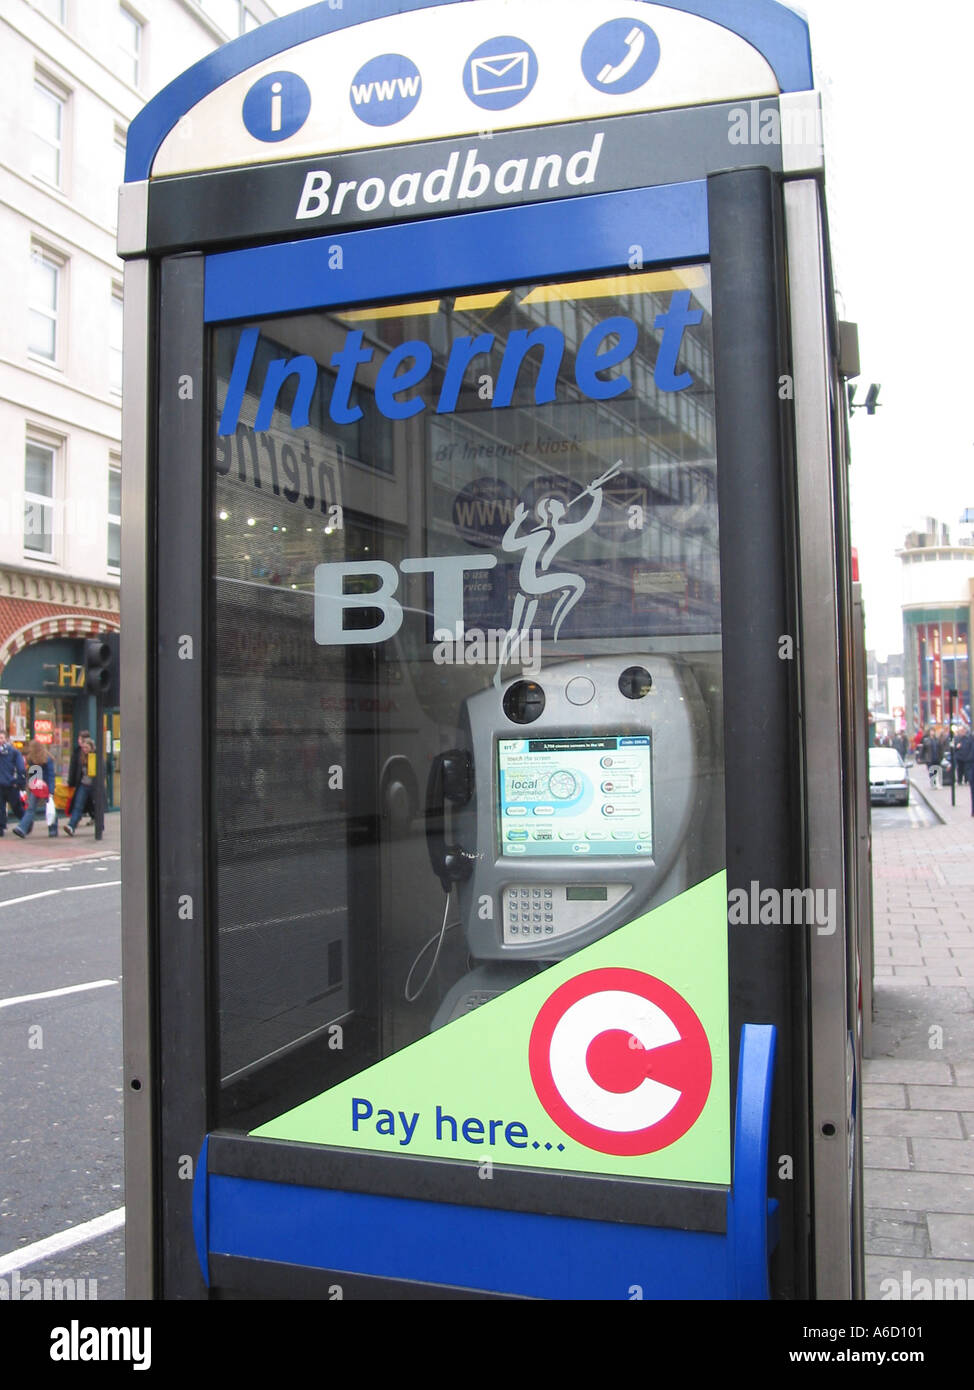 Broadband Internet Access Telephone Box Congestion Charging Payments London England - Stock Image